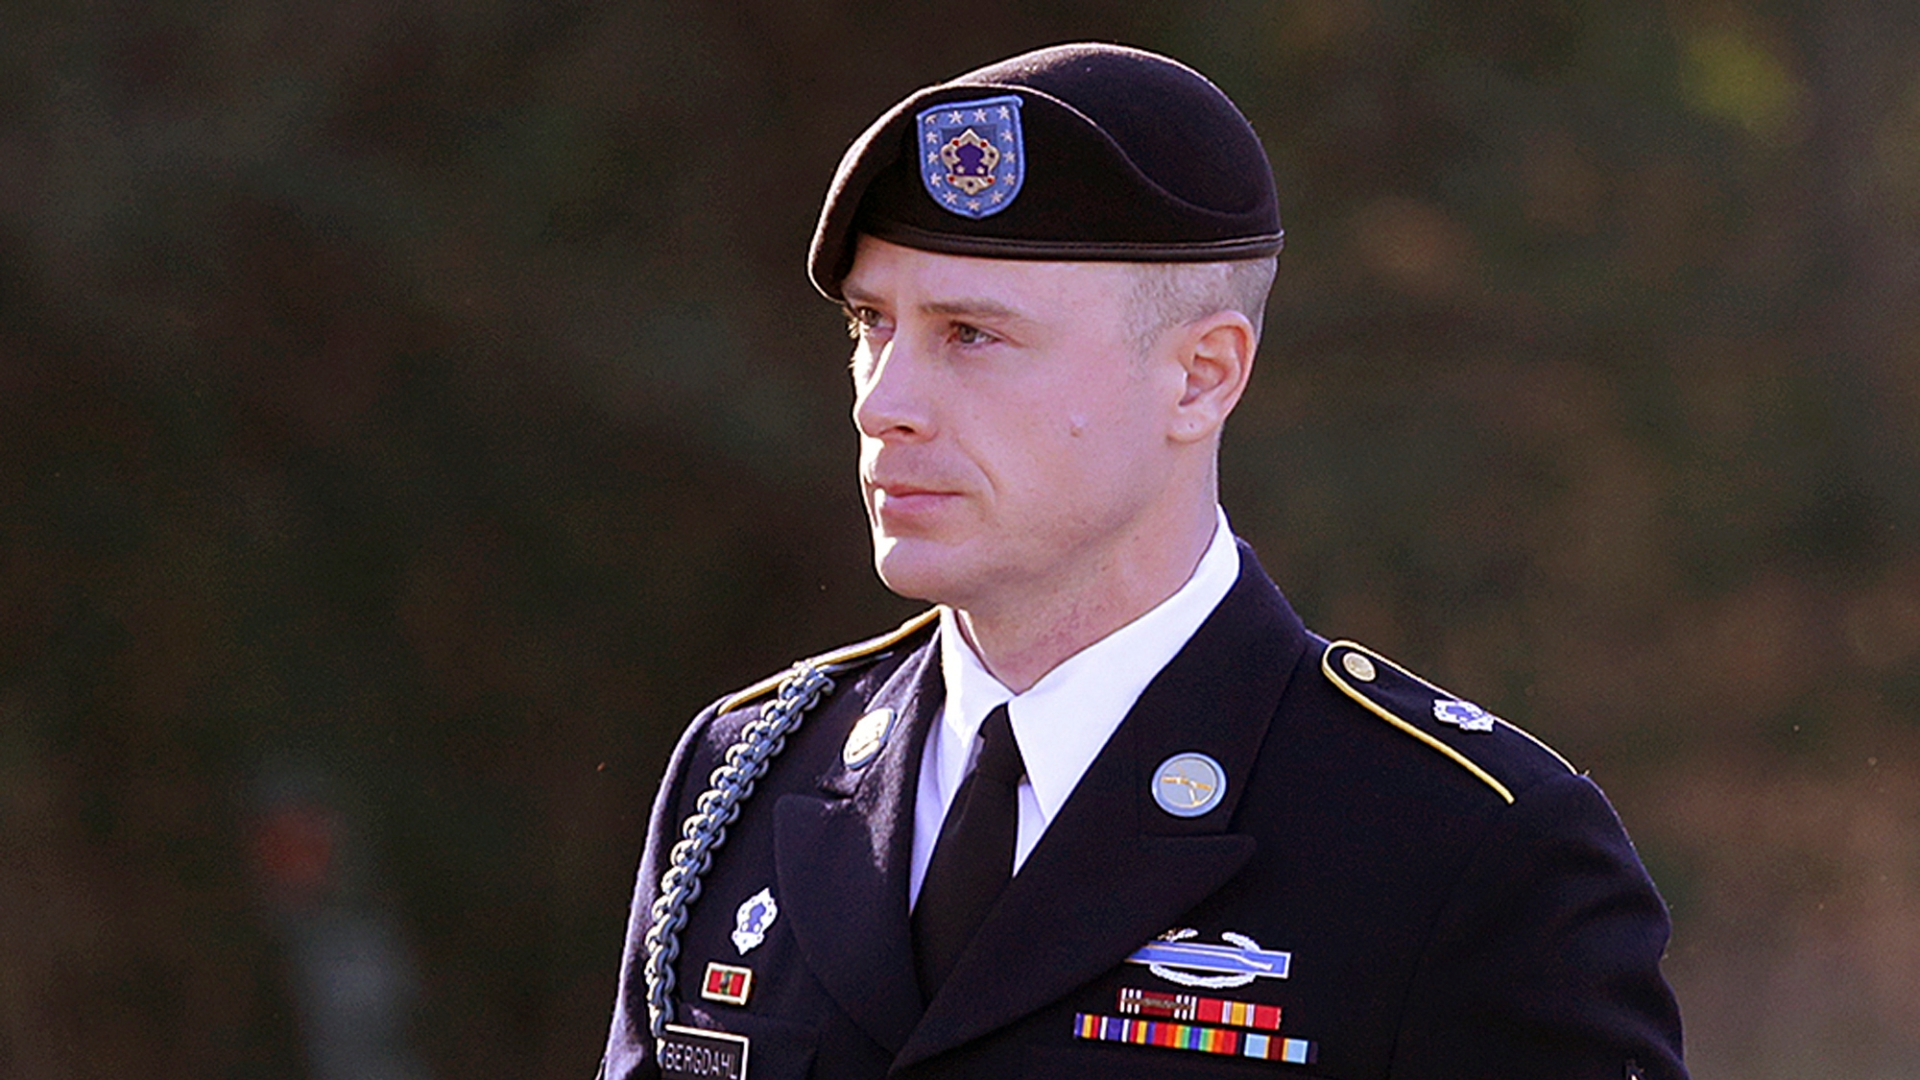 Bowe Bergdahl, the former hostage who pleaded guilty to desertion, avoids prison